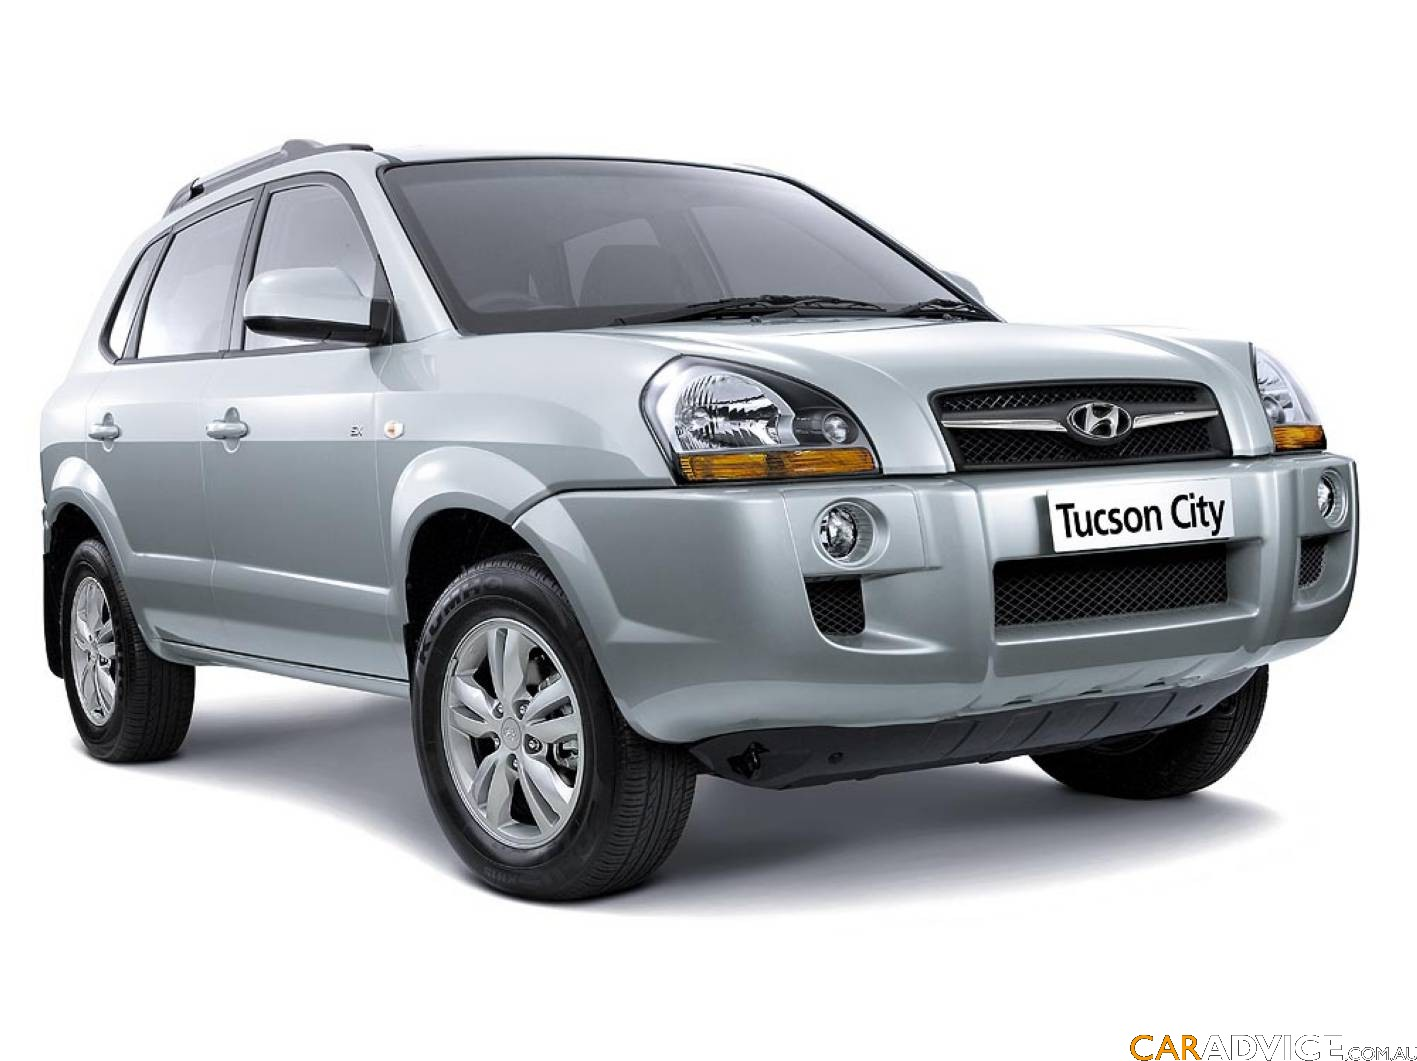 2009 hyundai tucson pictures information and specs auto. Black Bedroom Furniture Sets. Home Design Ideas